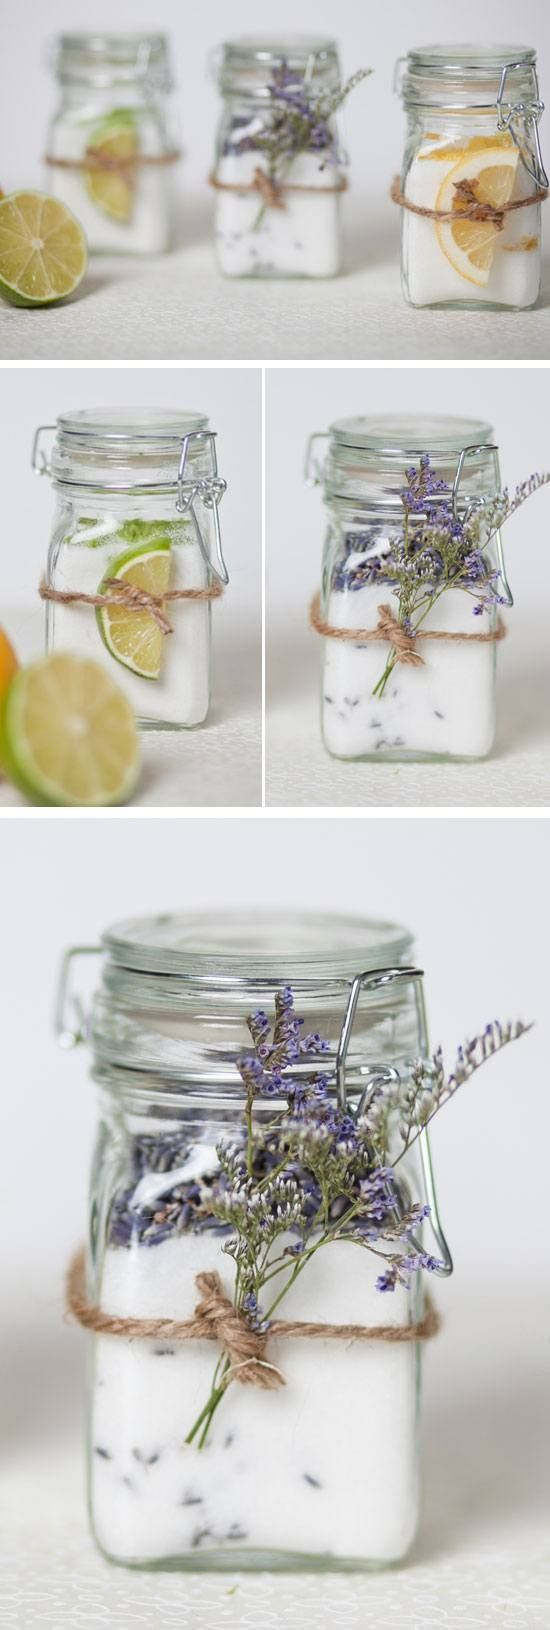 195 best Frugal but Fun Stuff with Kids images on Pinterest ...